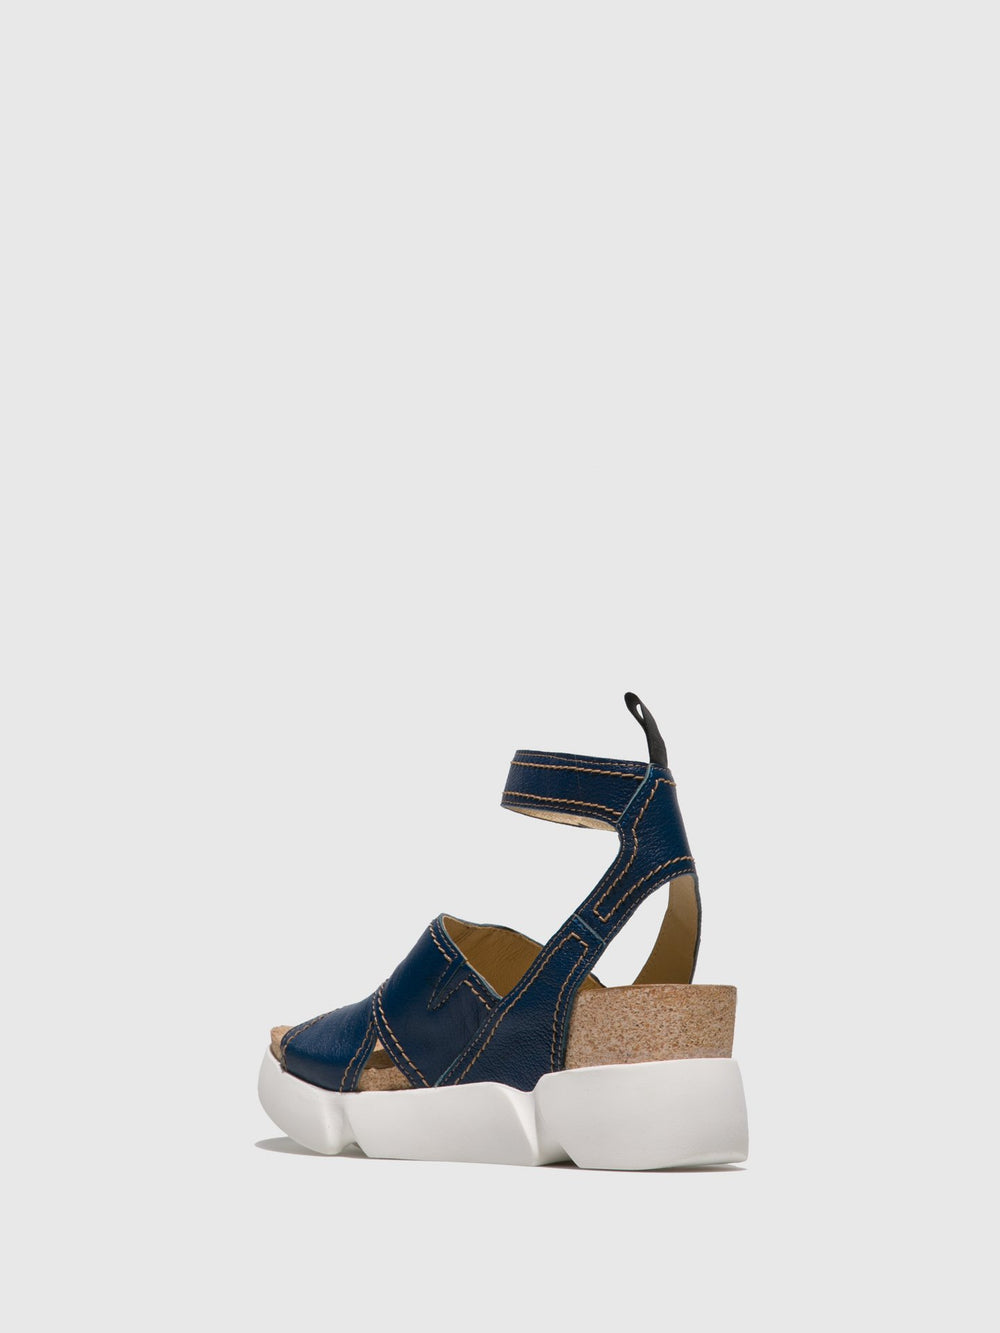 Ankle Strap Sandals SOBE579FLY BLUE